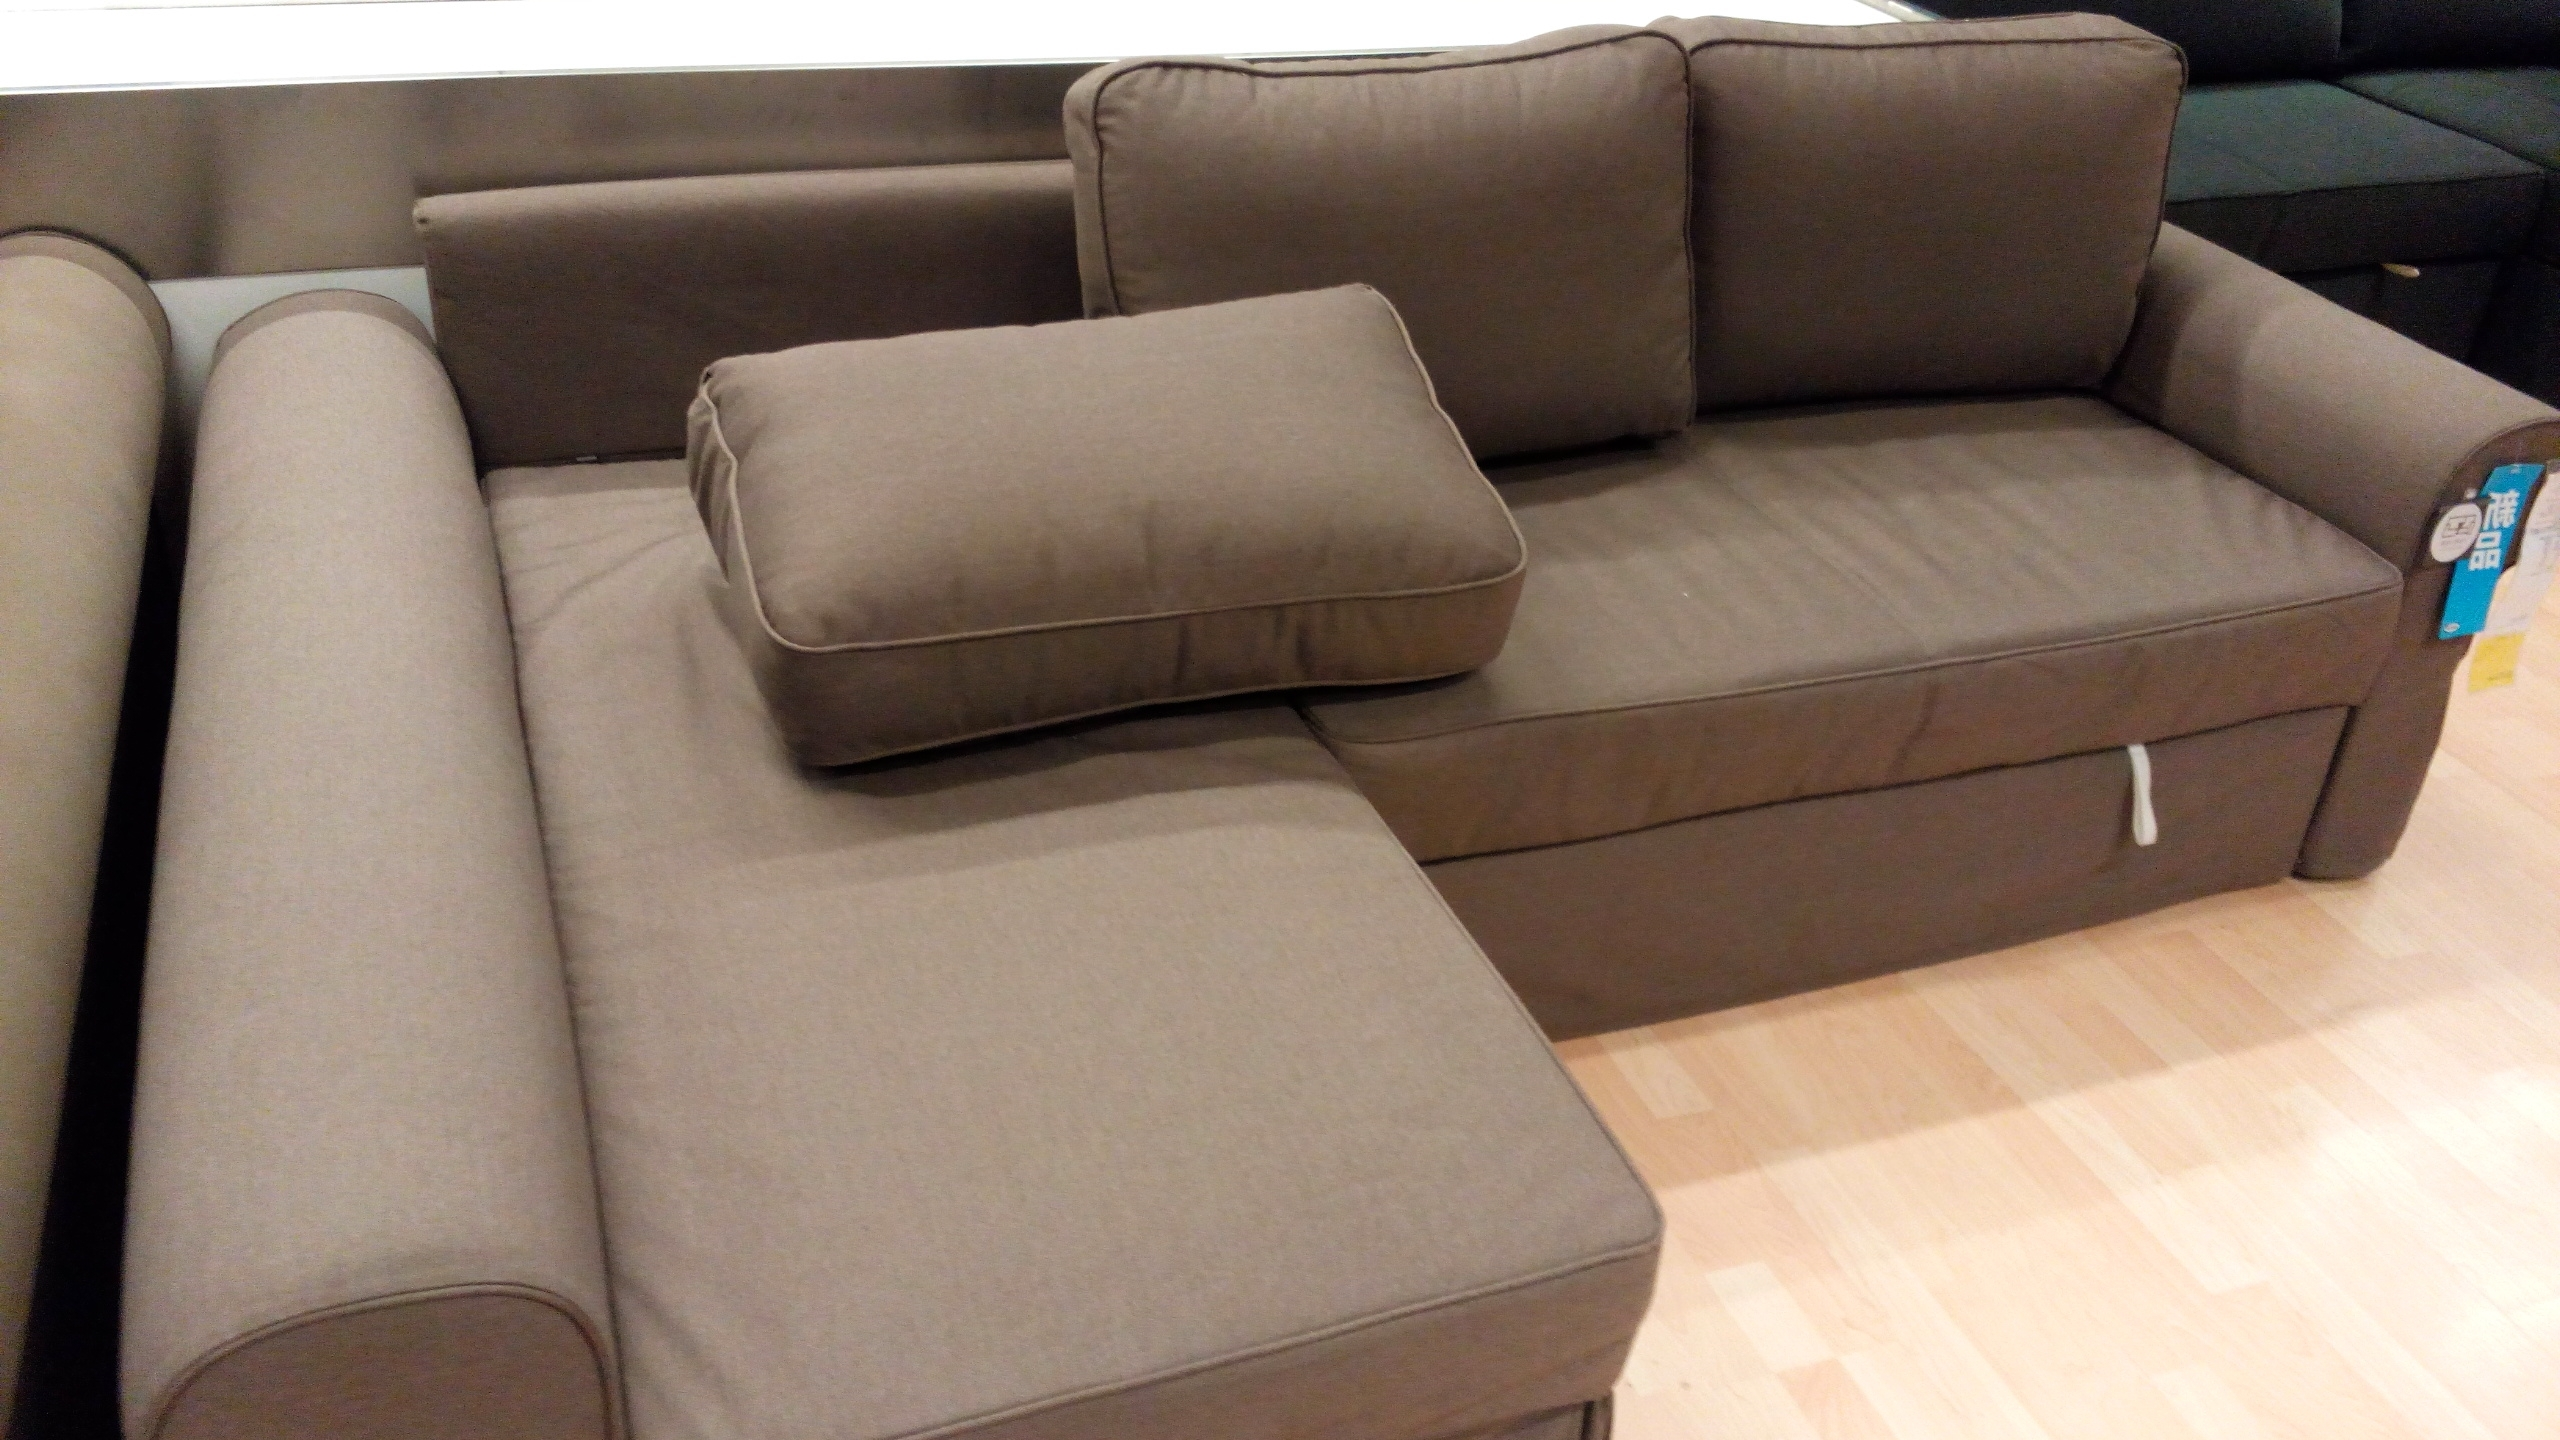 Most Recently Released Ikea Sofa Beds With Chaise With Regard To Ikea Vilasund And Backabro Review – Return Of The Sofa Bed Clones! (View 4 of 15)